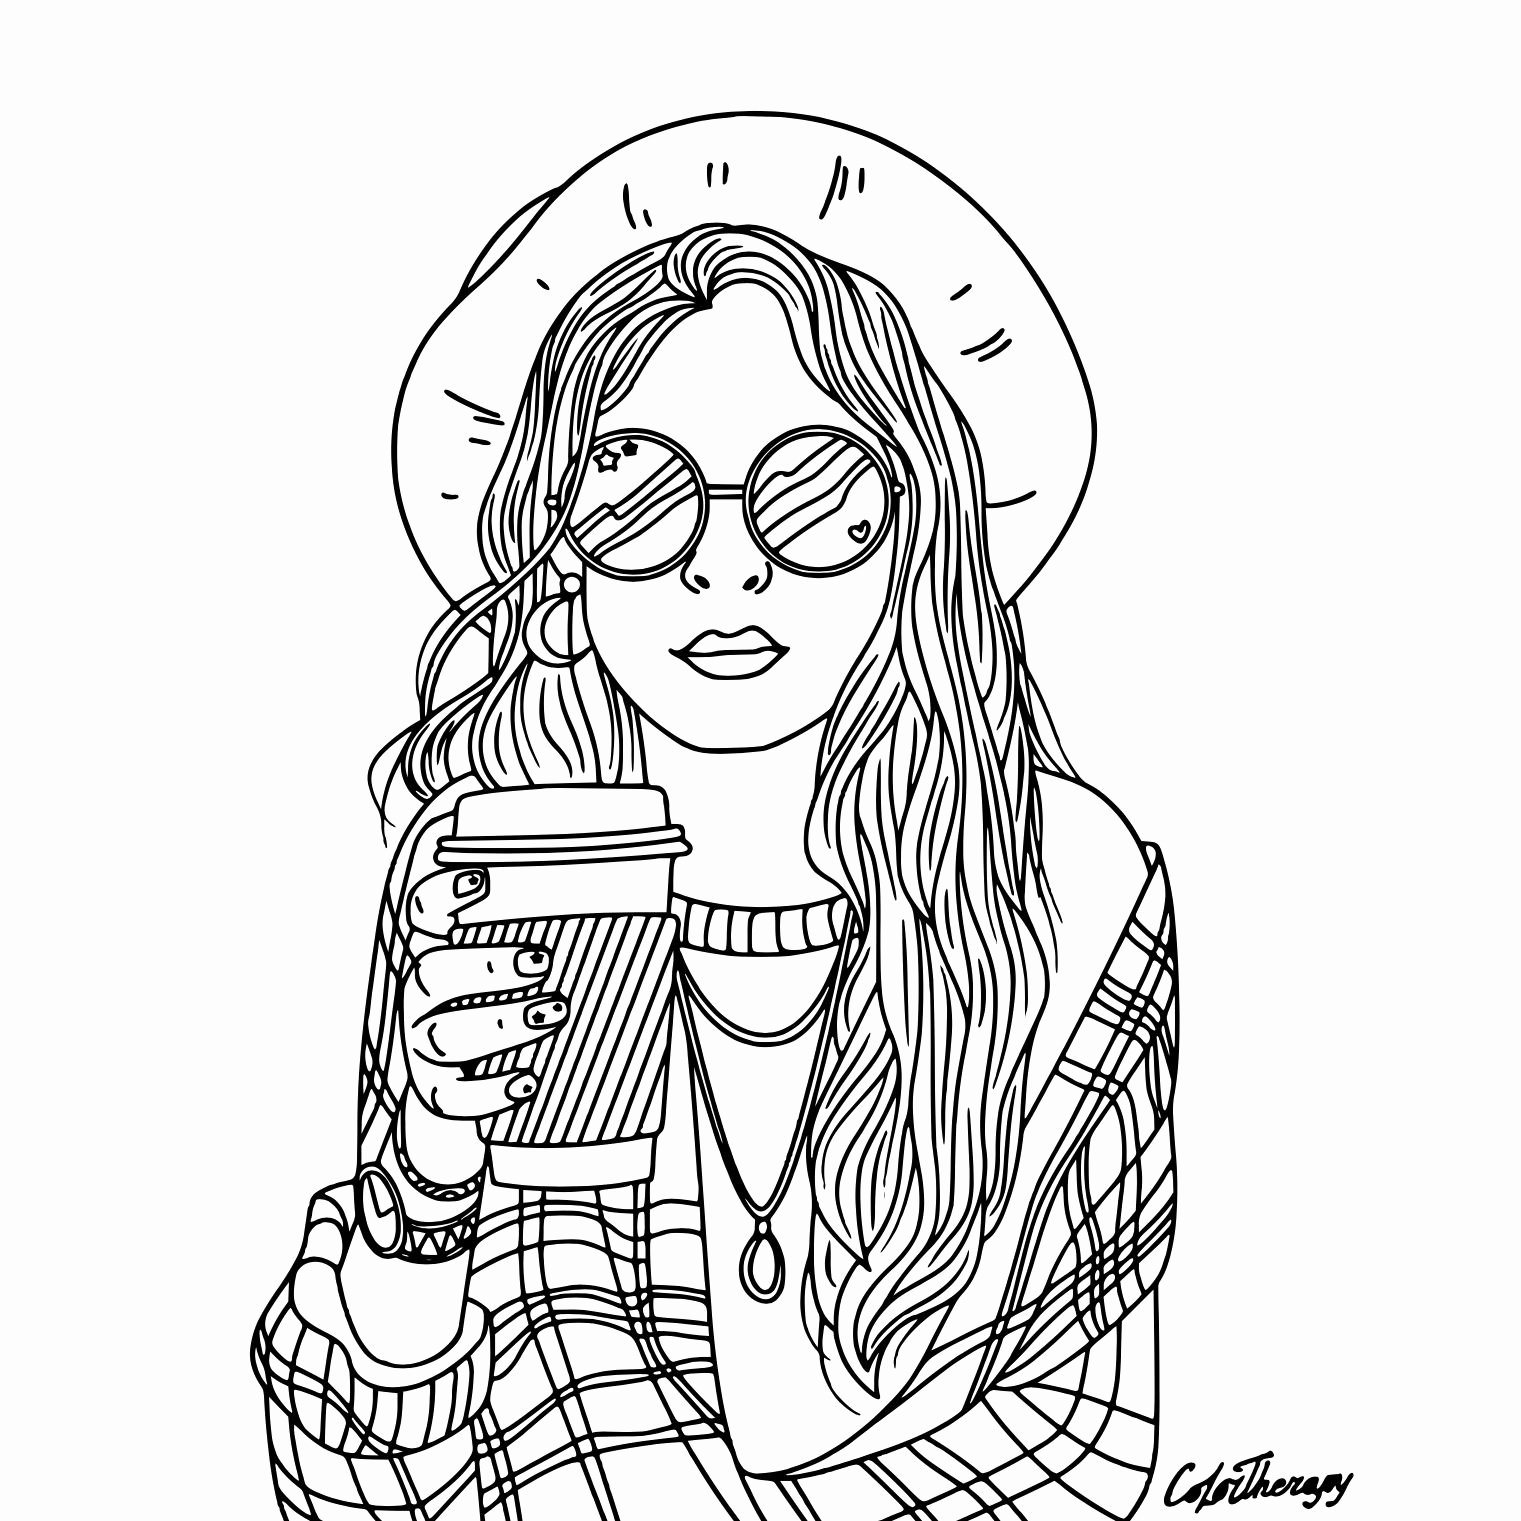 coloring pages of girls realistic adult coloring page girl portrait and clothes colouring girls realistic of coloring pages